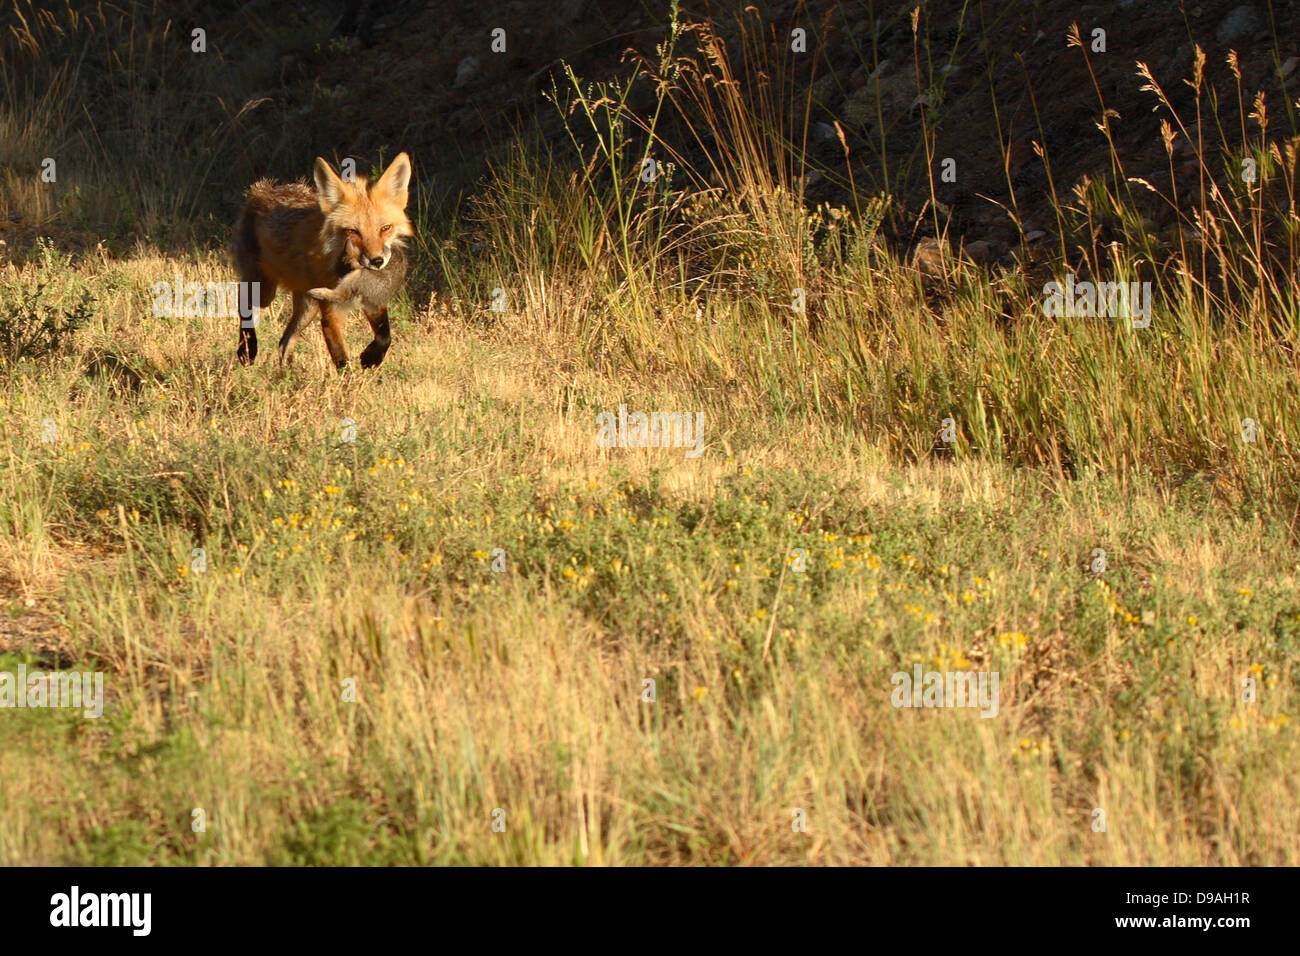 A Red Fox bringing a rabbit home to its puppies. - Stock Image